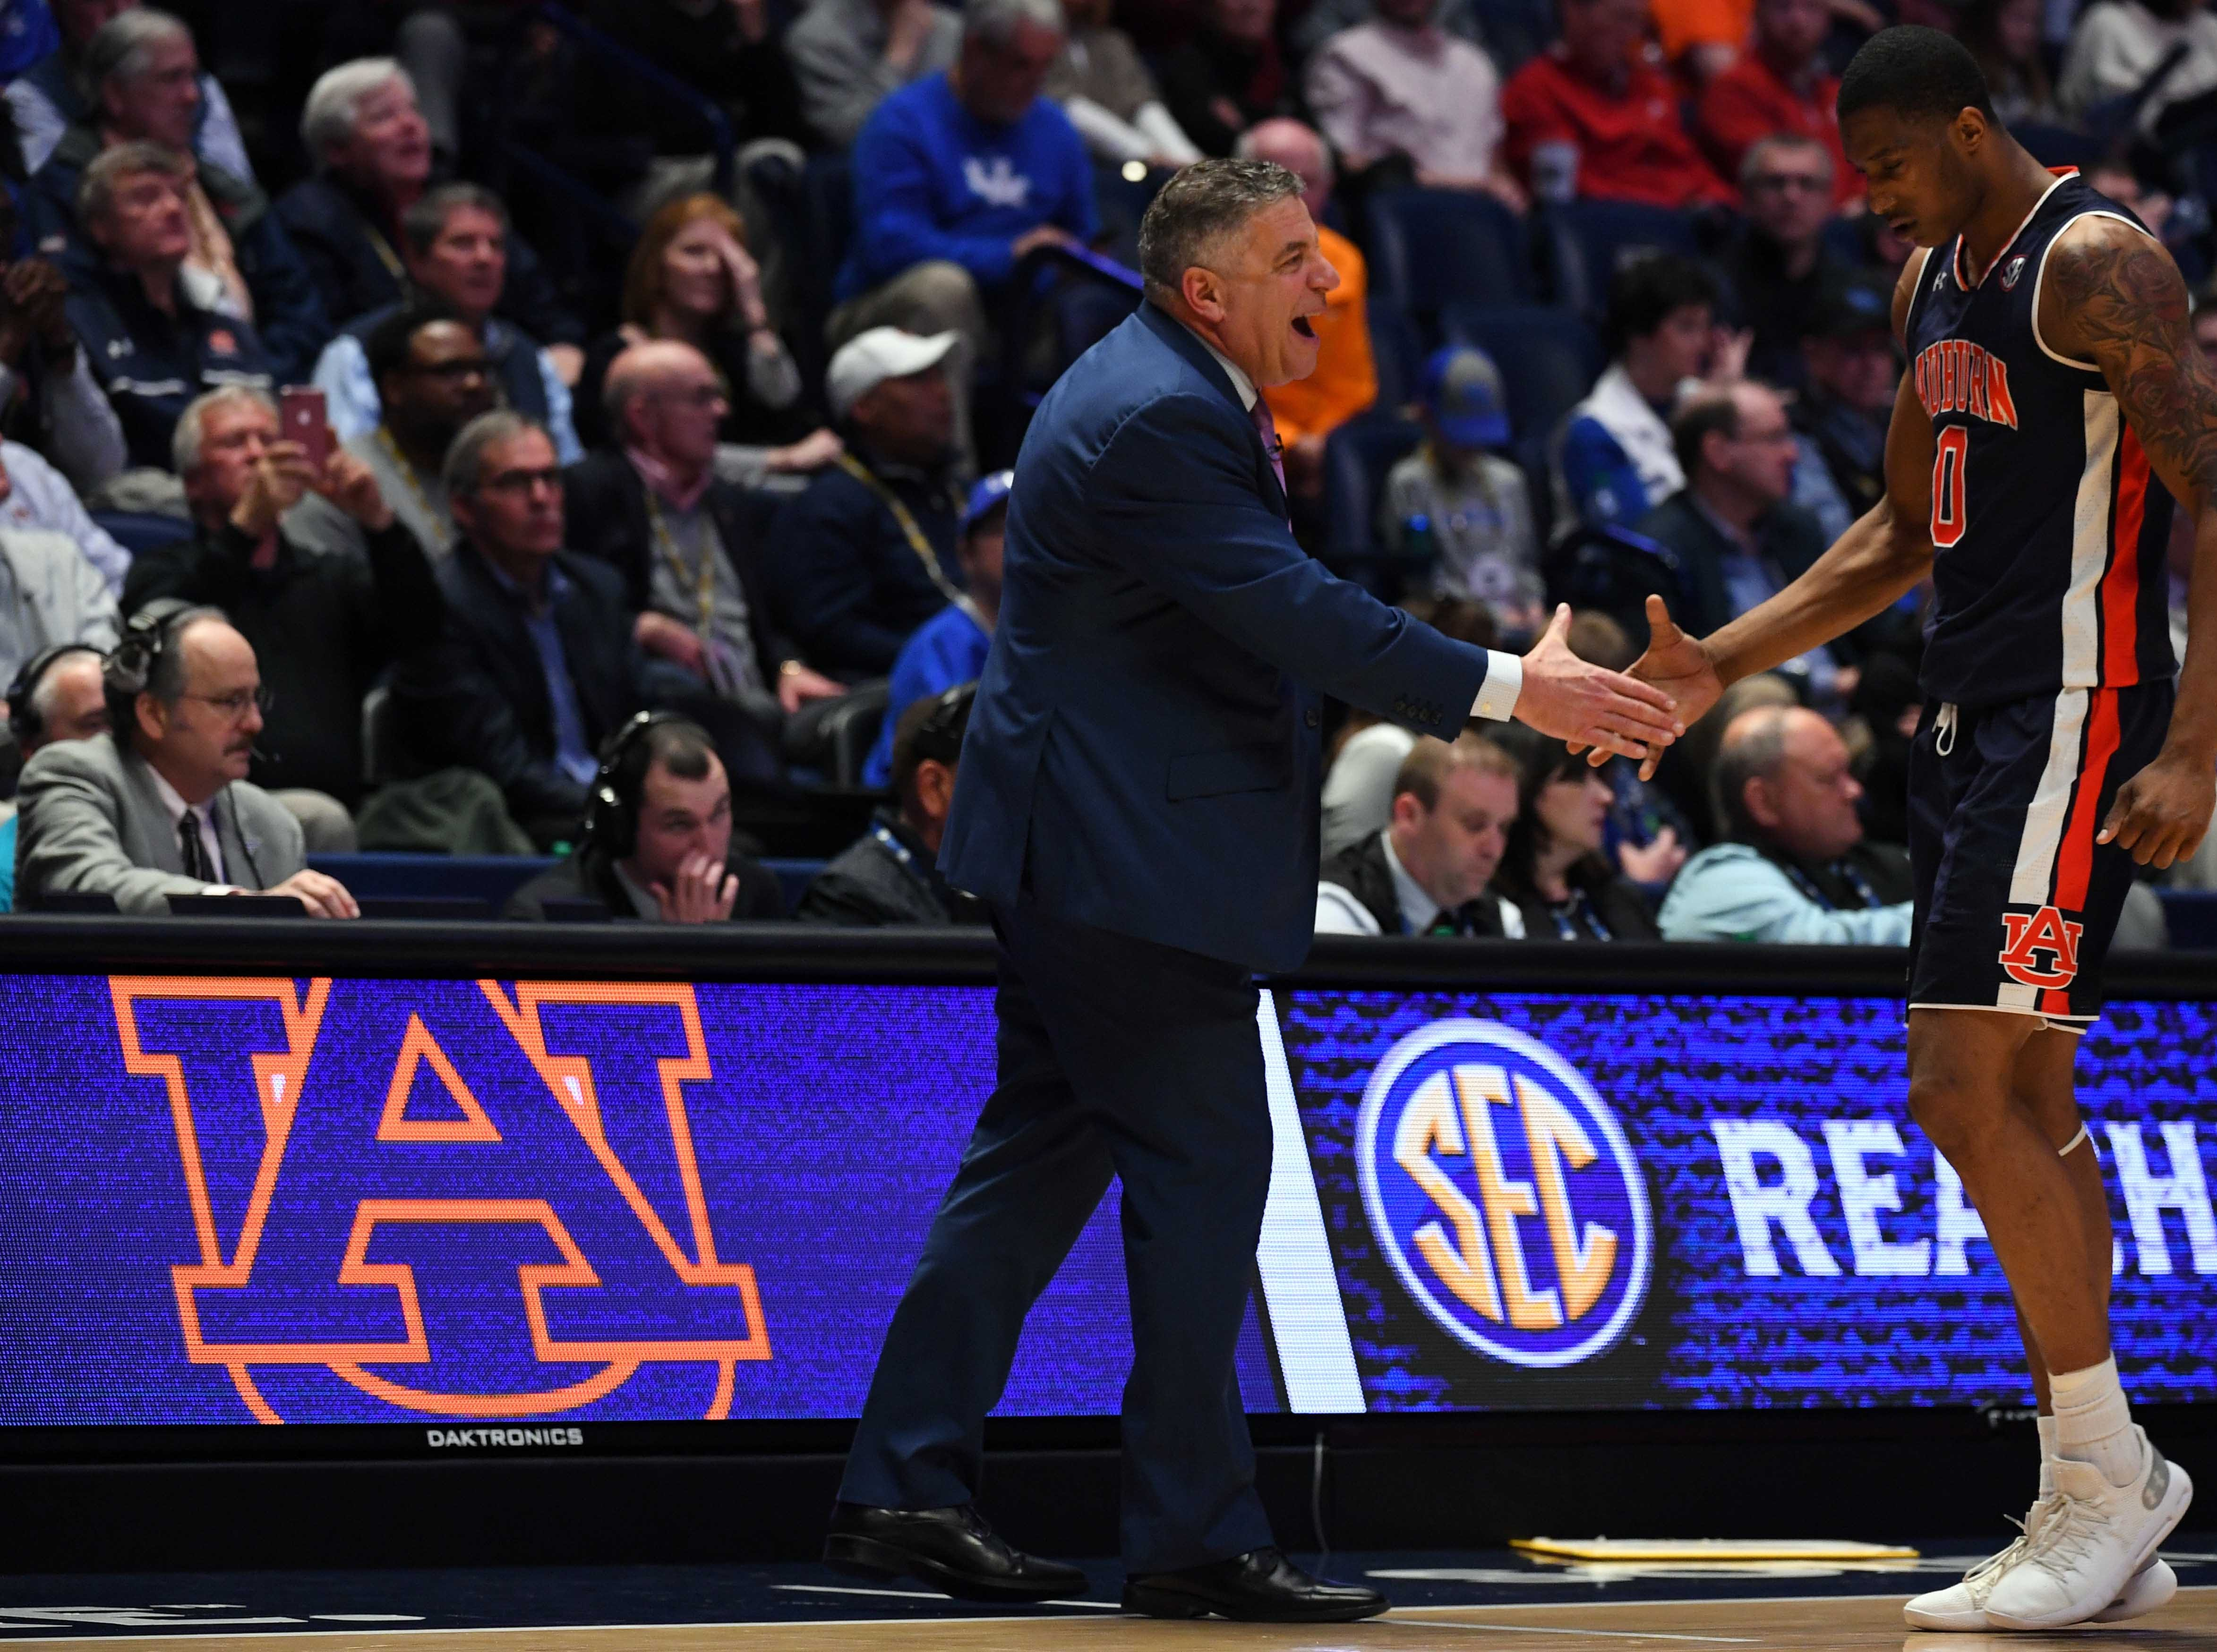 Auburn head coach Bruce Pearl and center Horace Spencer (0) during the second half against South Carolina at the SEC Tournament on March 15, 2019, in Nashville, Tennessee.